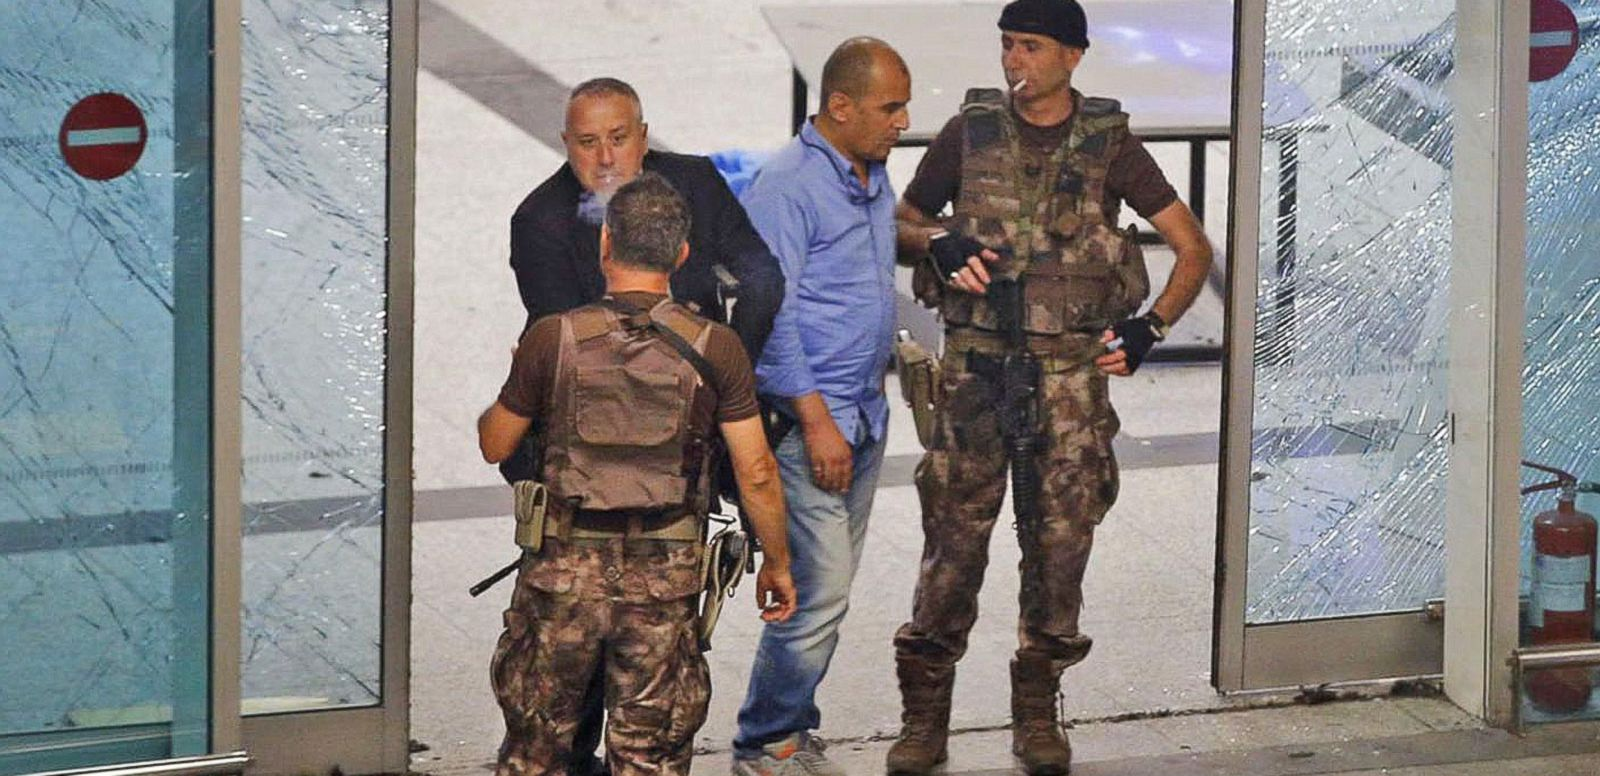 VIDEO: Latest Details on Istanbul Airport Suicide Attackers